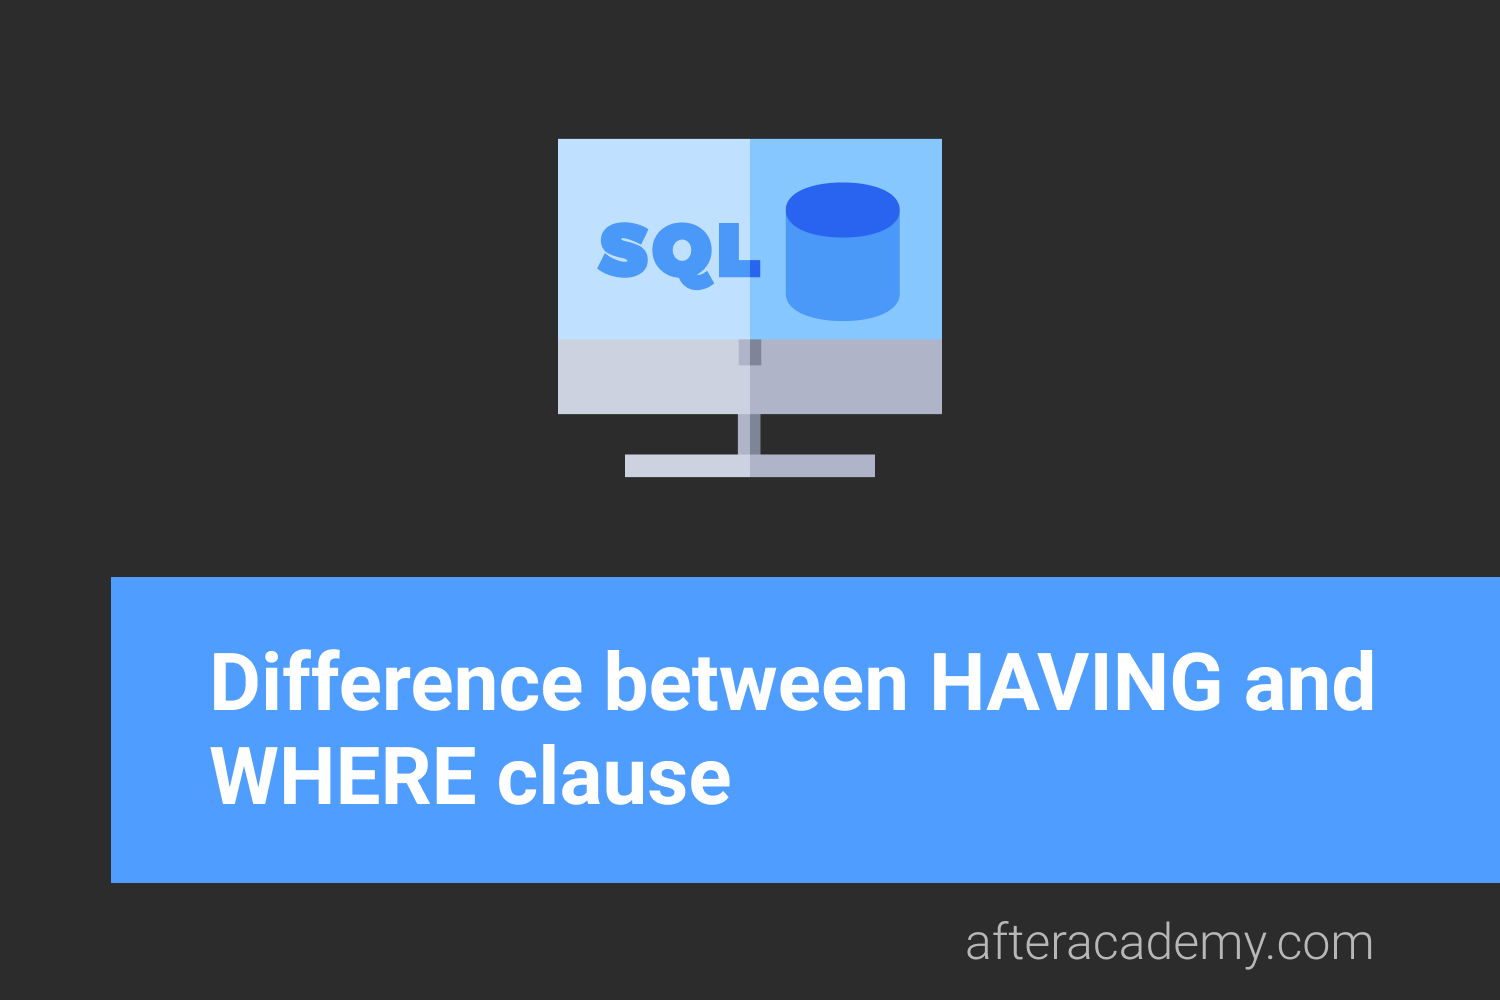 What is the difference between HAVING and WHERE clause?